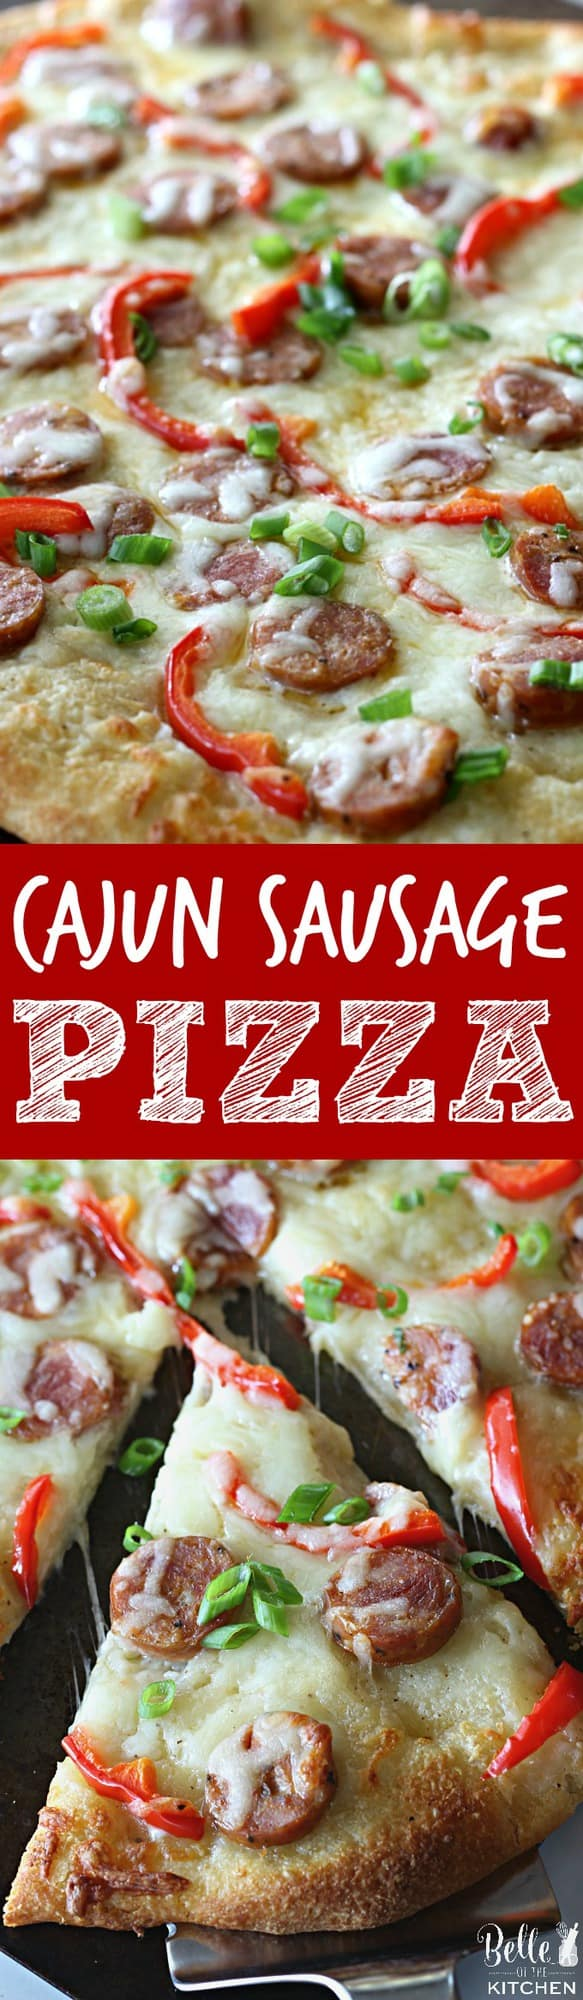 This Cajun Sausage Pizza starts with your favorite pizza dough, then gets piled with a creamy homemade sauce, andouille sausage, peppers, and gooey cheese.